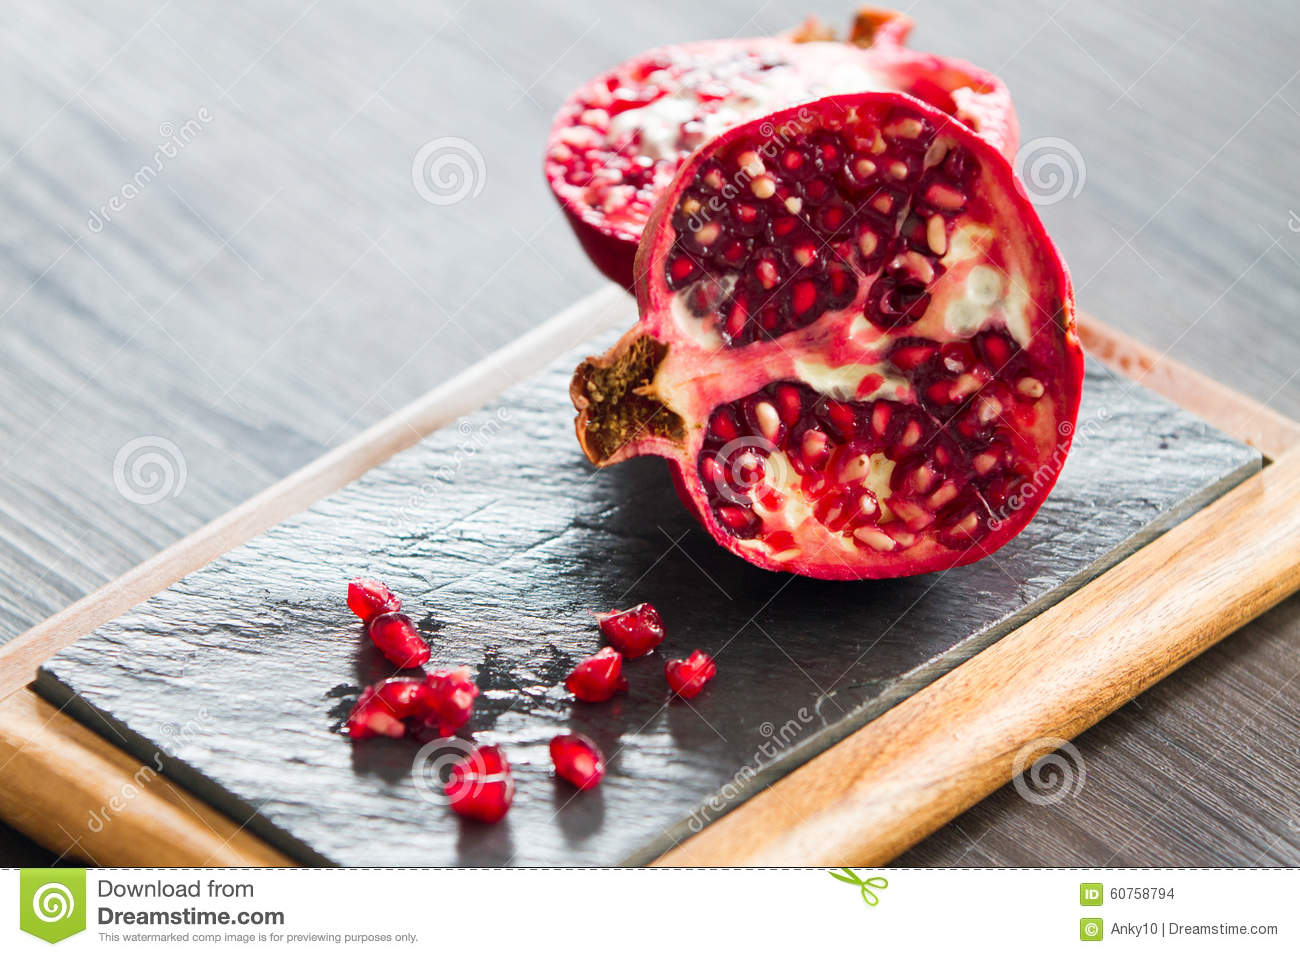 how to properly cut up a pomegranate